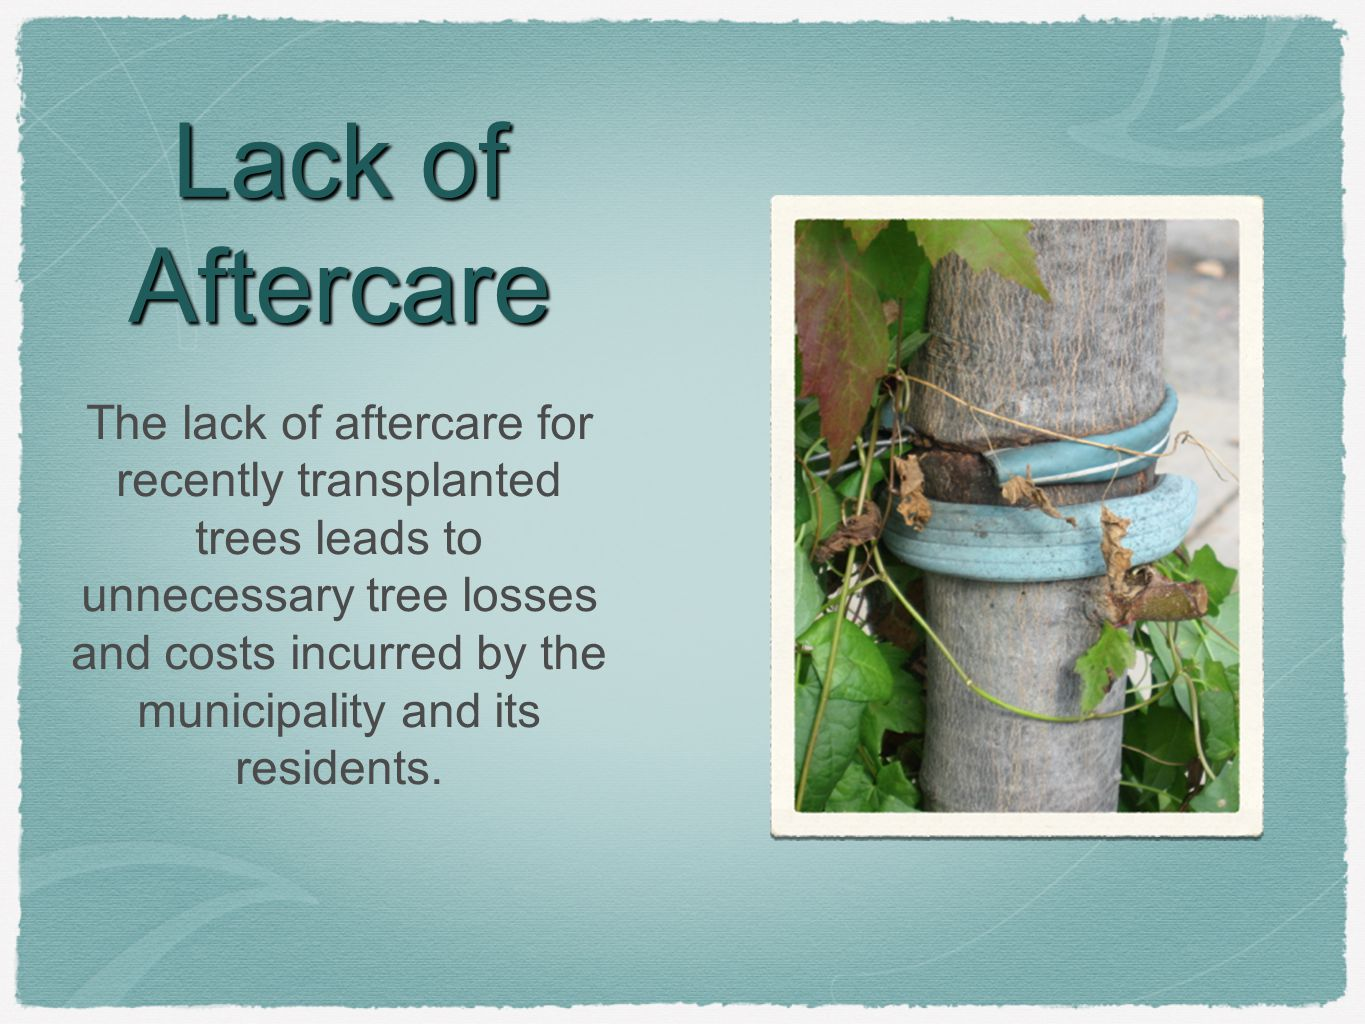 Lack of Aftercare The lack of aftercare for recently transplanted trees leads to unnecessary tree losses and costs incurred by the municipality and its residents.